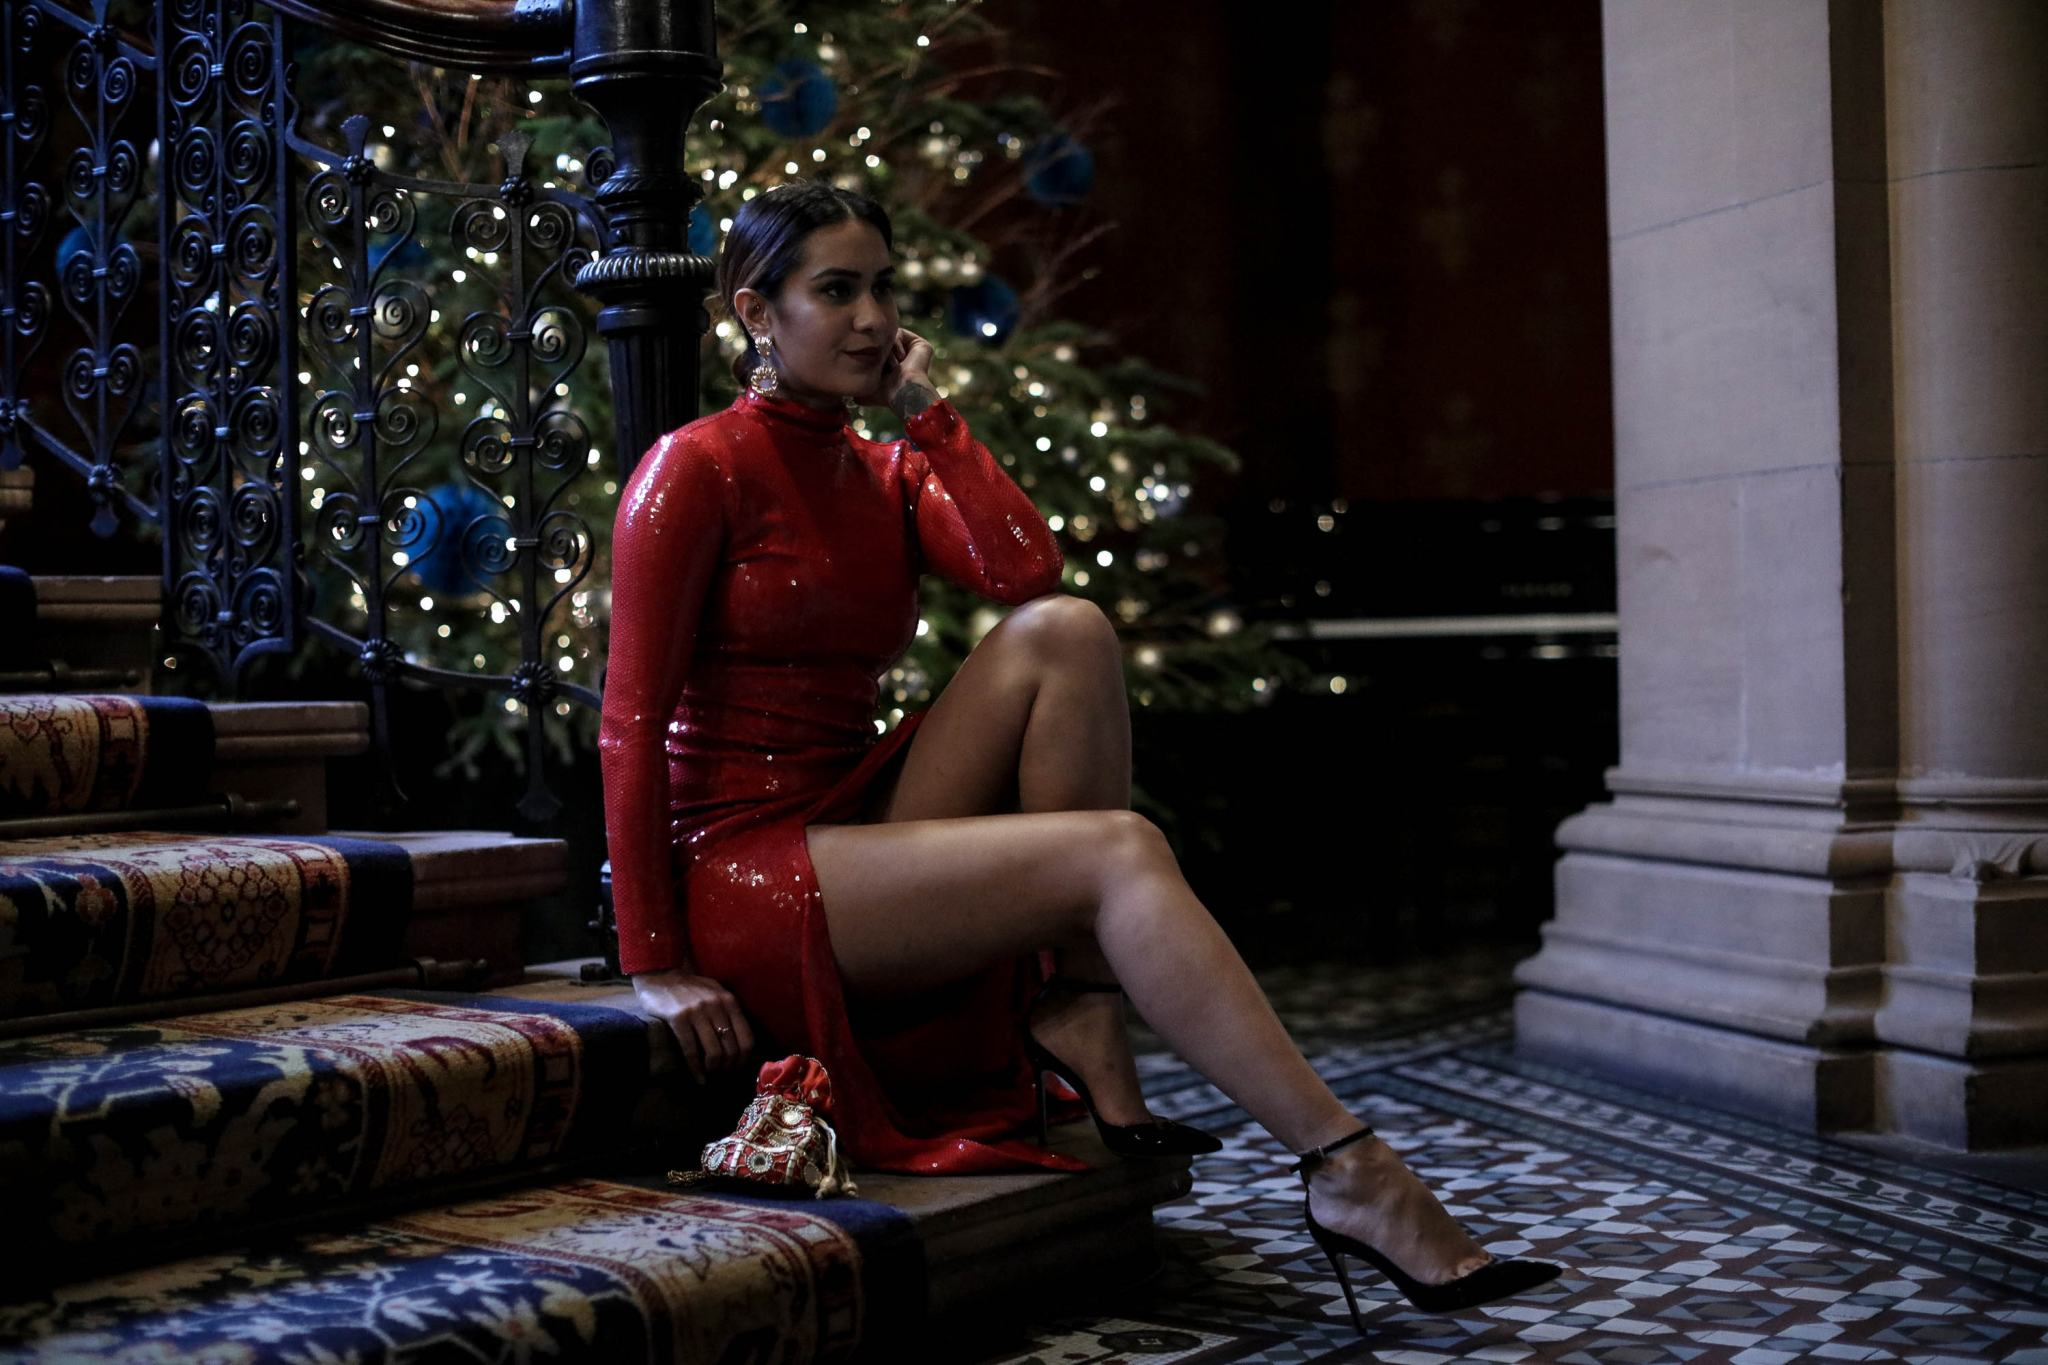 Christmas Party Dress Edit 2018